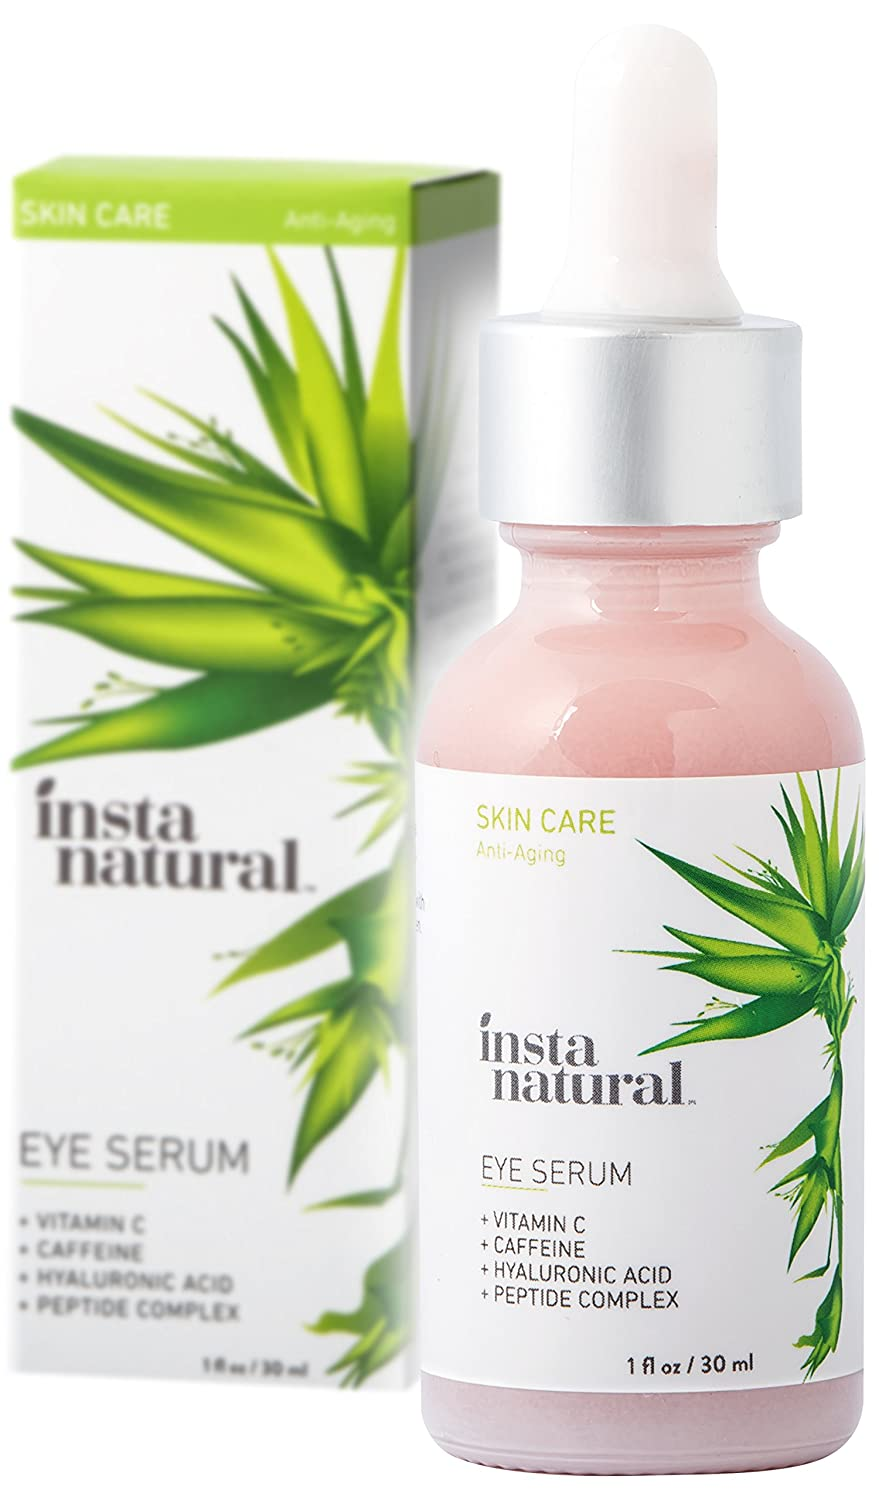 InstaNatural Eye Serum For Dark Circles & Puffiness - Reduces Bags, Wrinkles, Fine Lines, Sagging Skin & Puffy Eyes - With Vitamin C, Caffeine, Plant Stem Cells, Astaxanthin & Kojic Acid - 30 ml B00Q306R4O